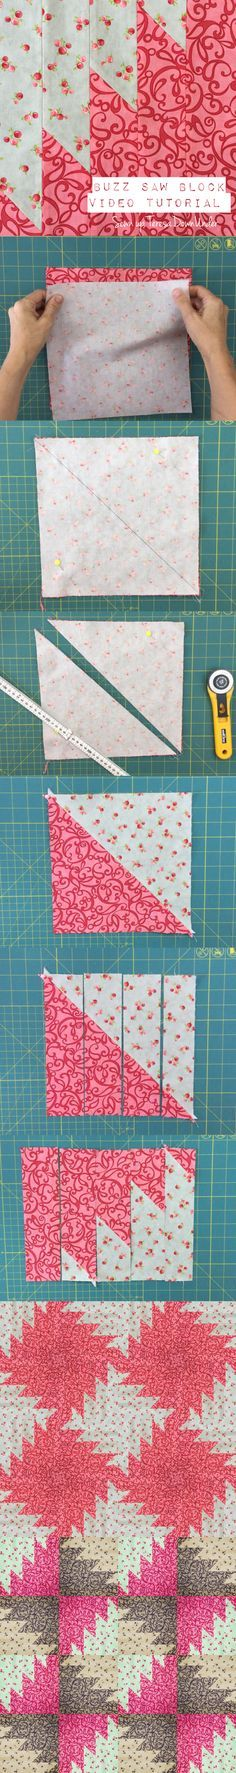 Video tutorial: Buzz saw patchwork block | Patchwork, Anleitungen ...